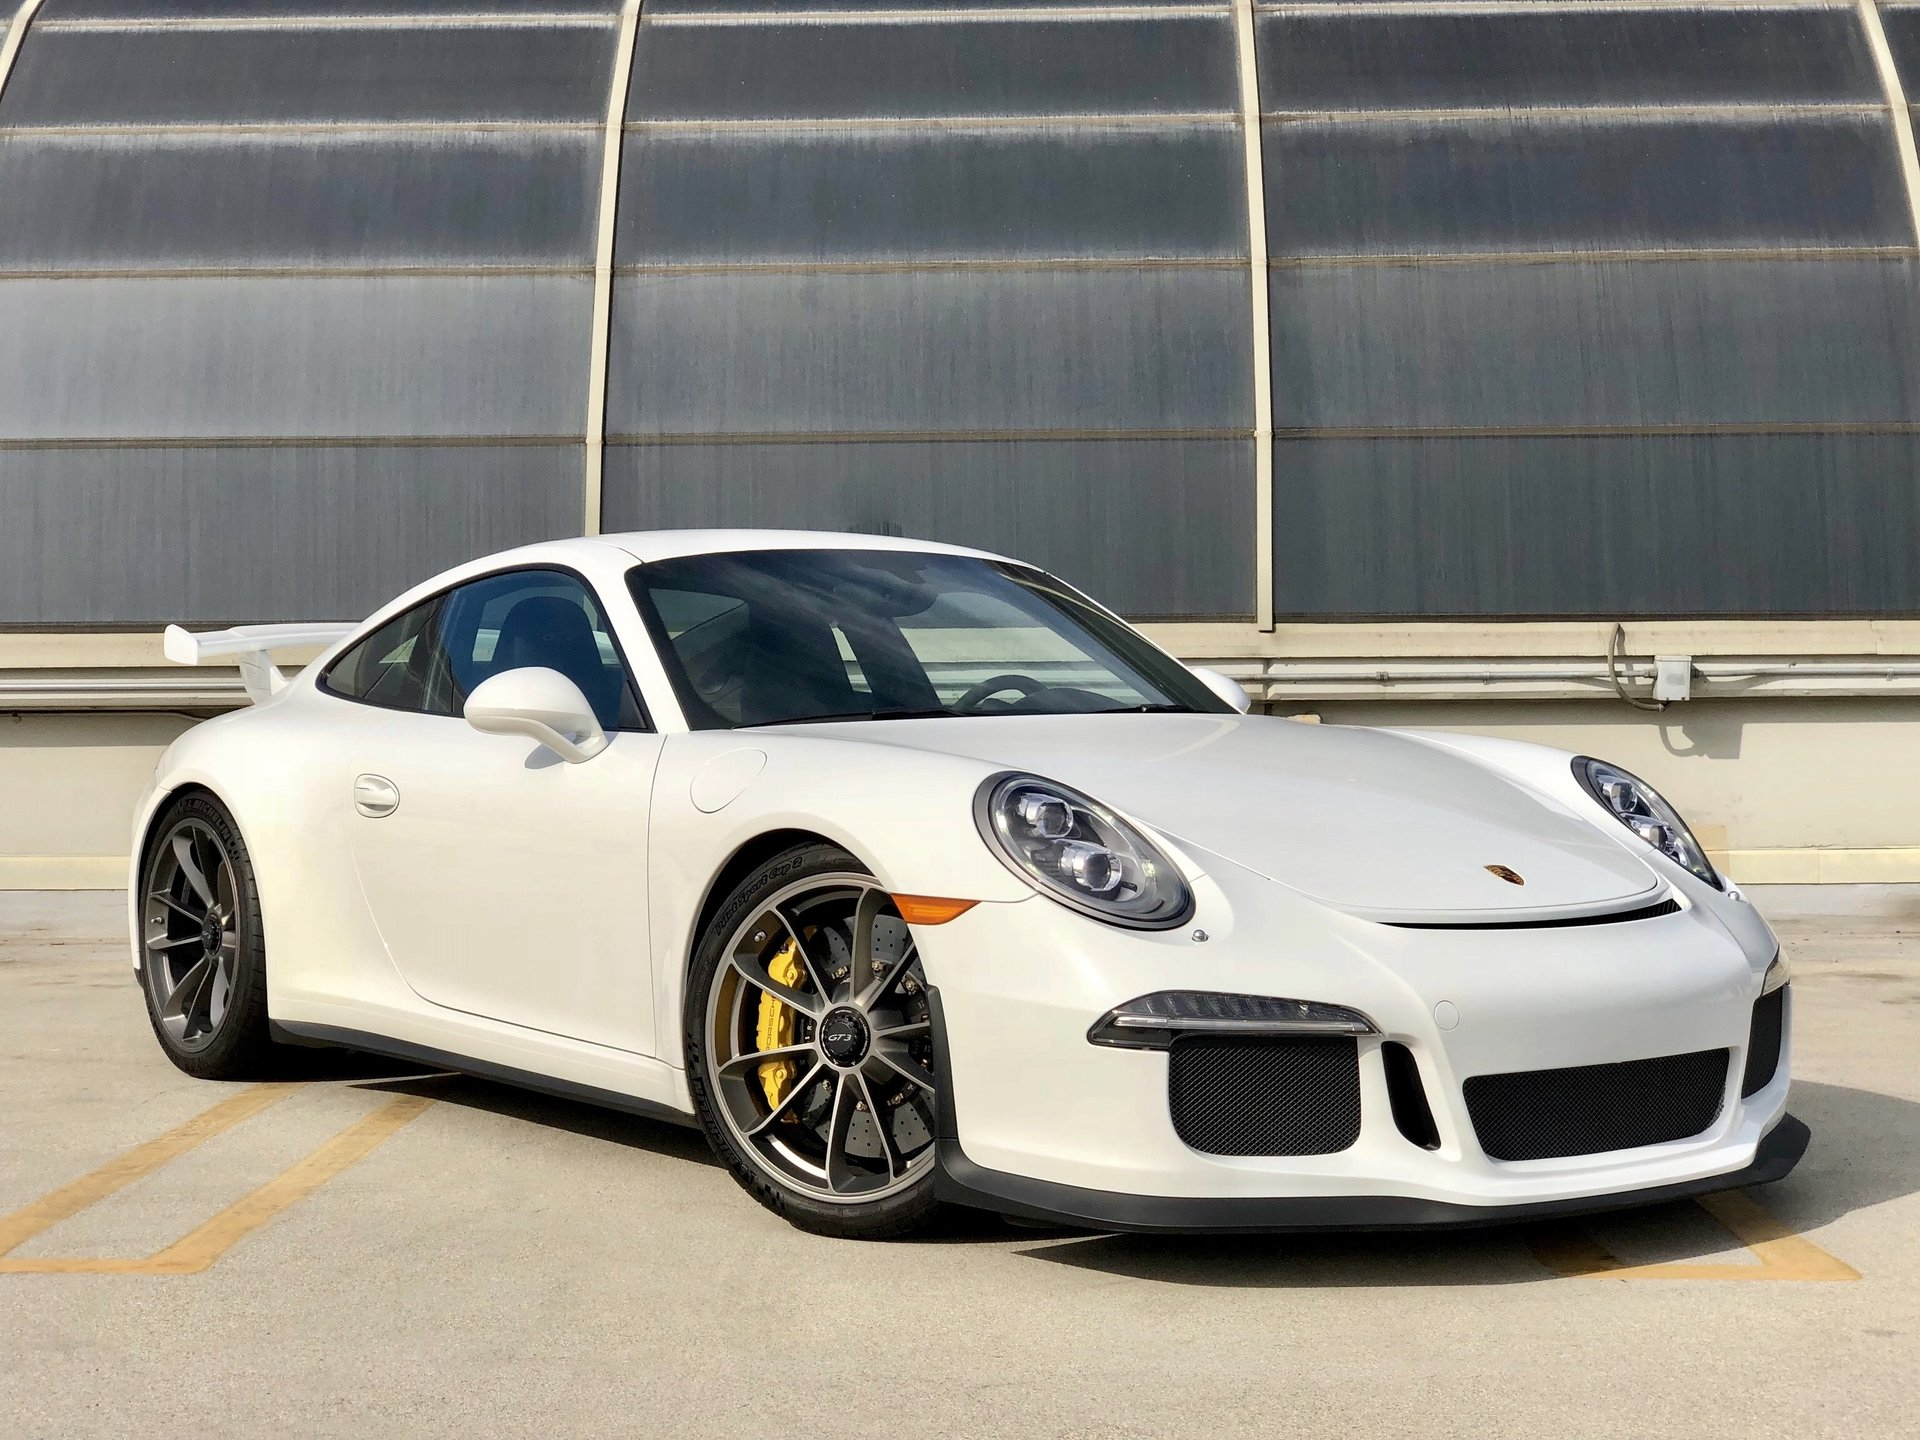 2014 porsche 911 991 gt3 for sale 75547 mcg. Black Bedroom Furniture Sets. Home Design Ideas